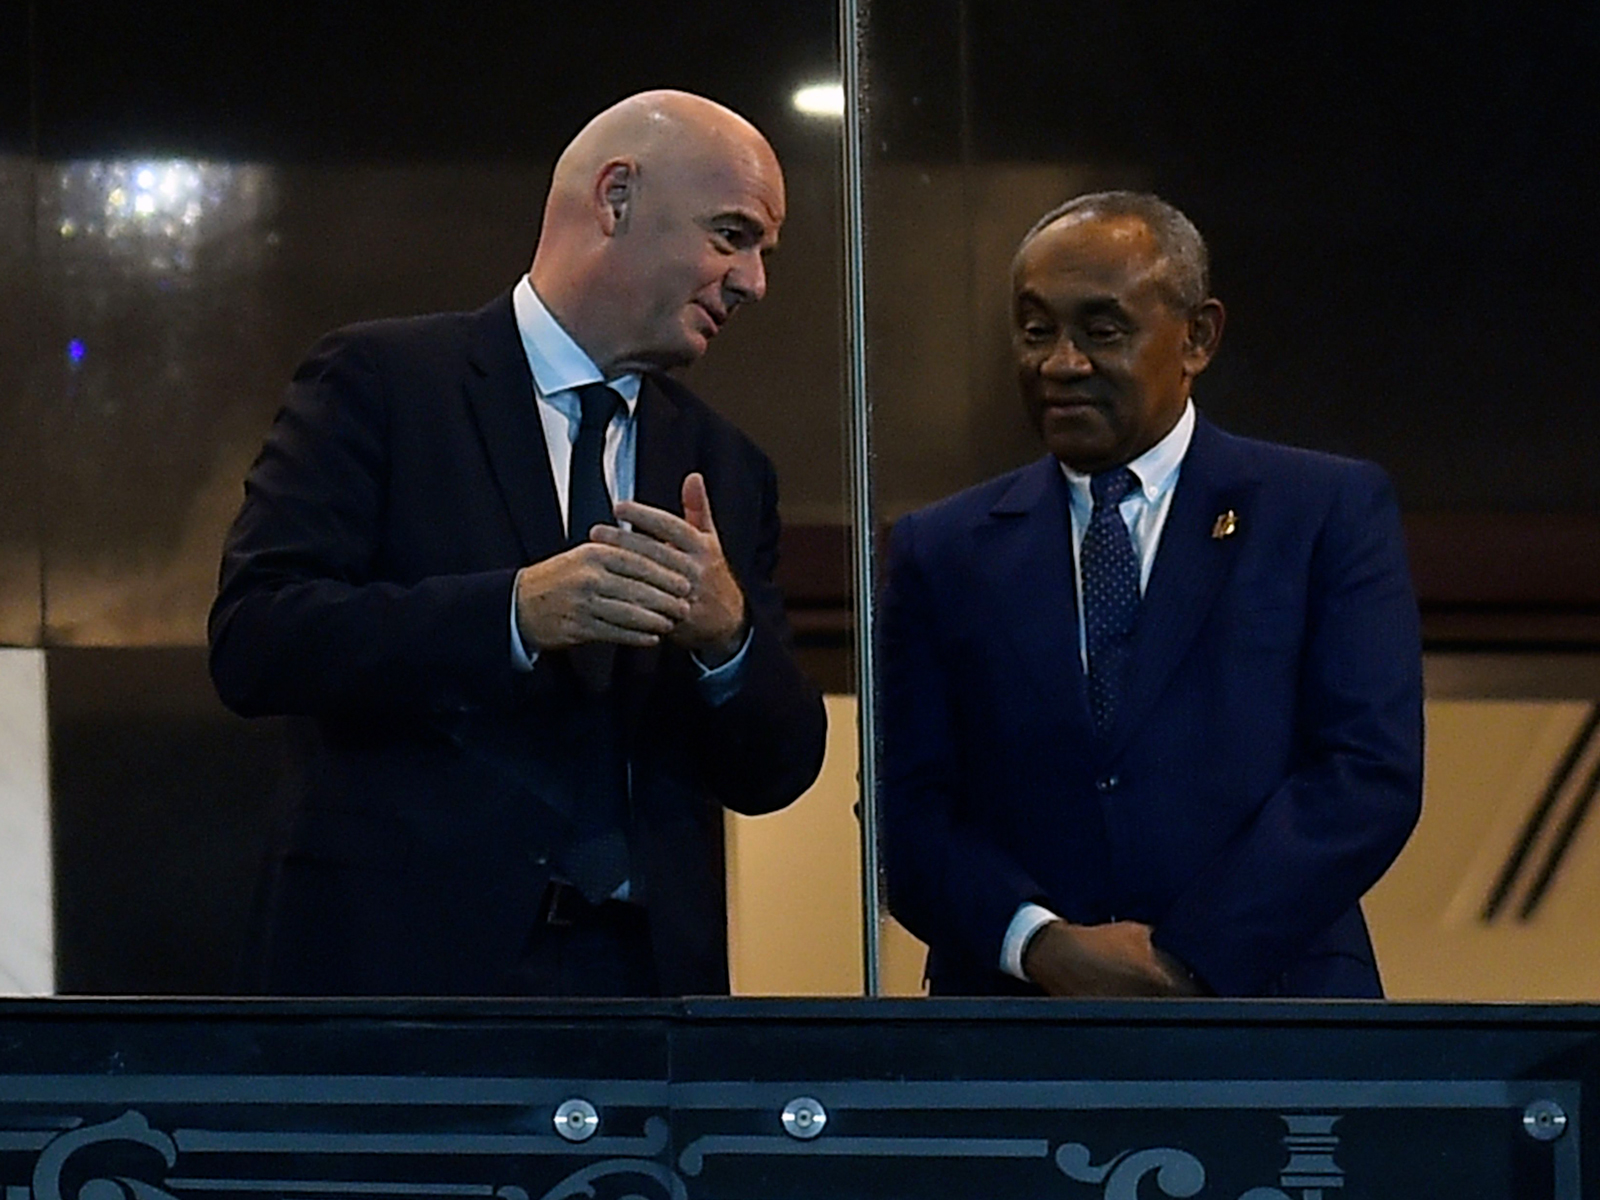 FIFA president Gianni Infantino, left, and Confederation of African Football president Ahmad Ahmad speak at the Africa Cup of Nations final.